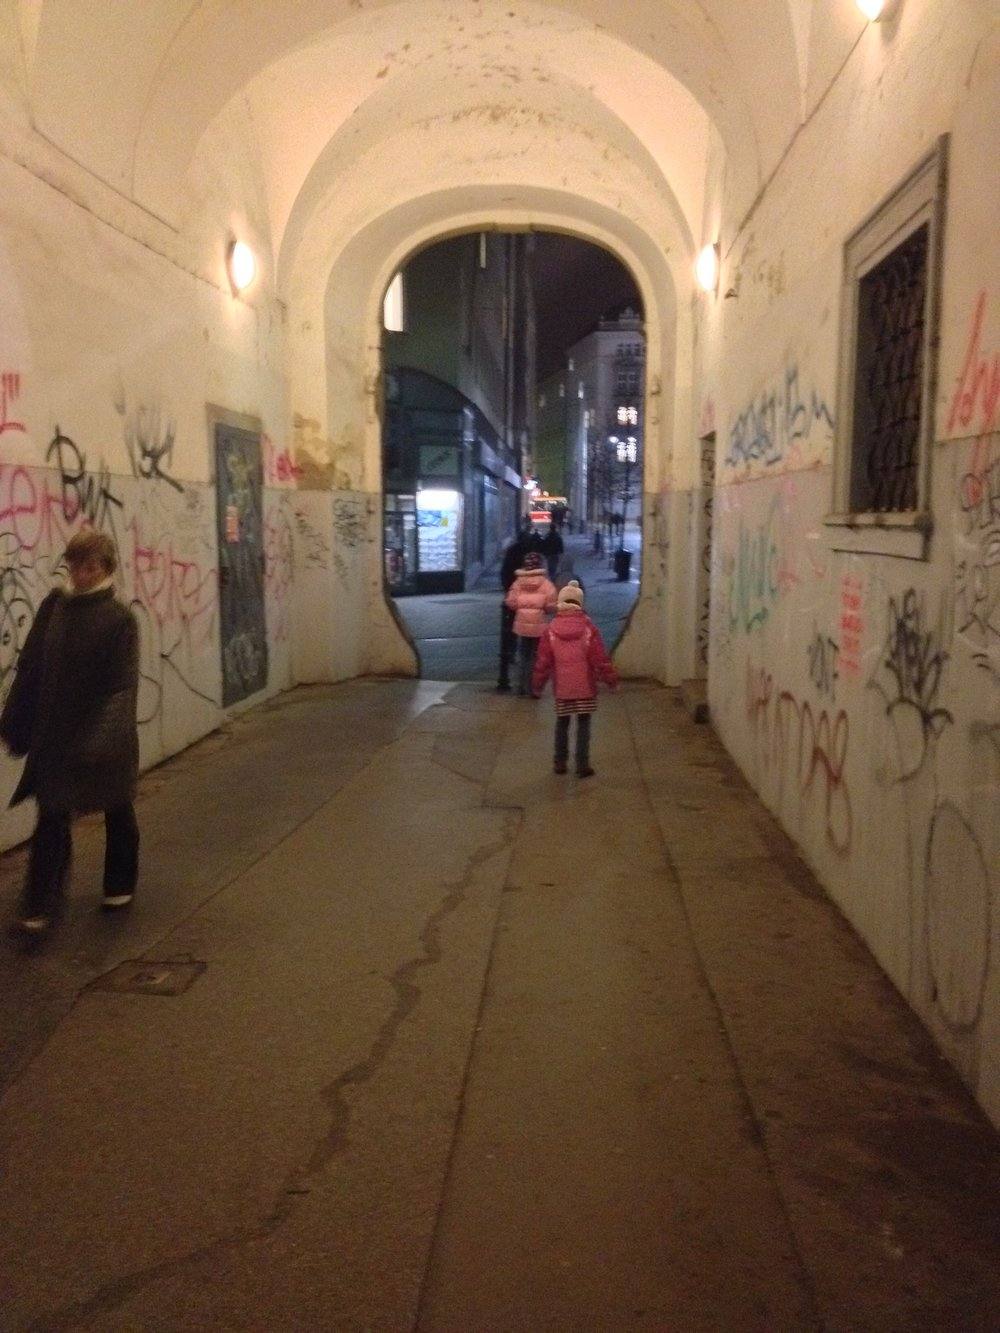 Nine feet of graffiti give rise to ornate old buildings throughout the city.